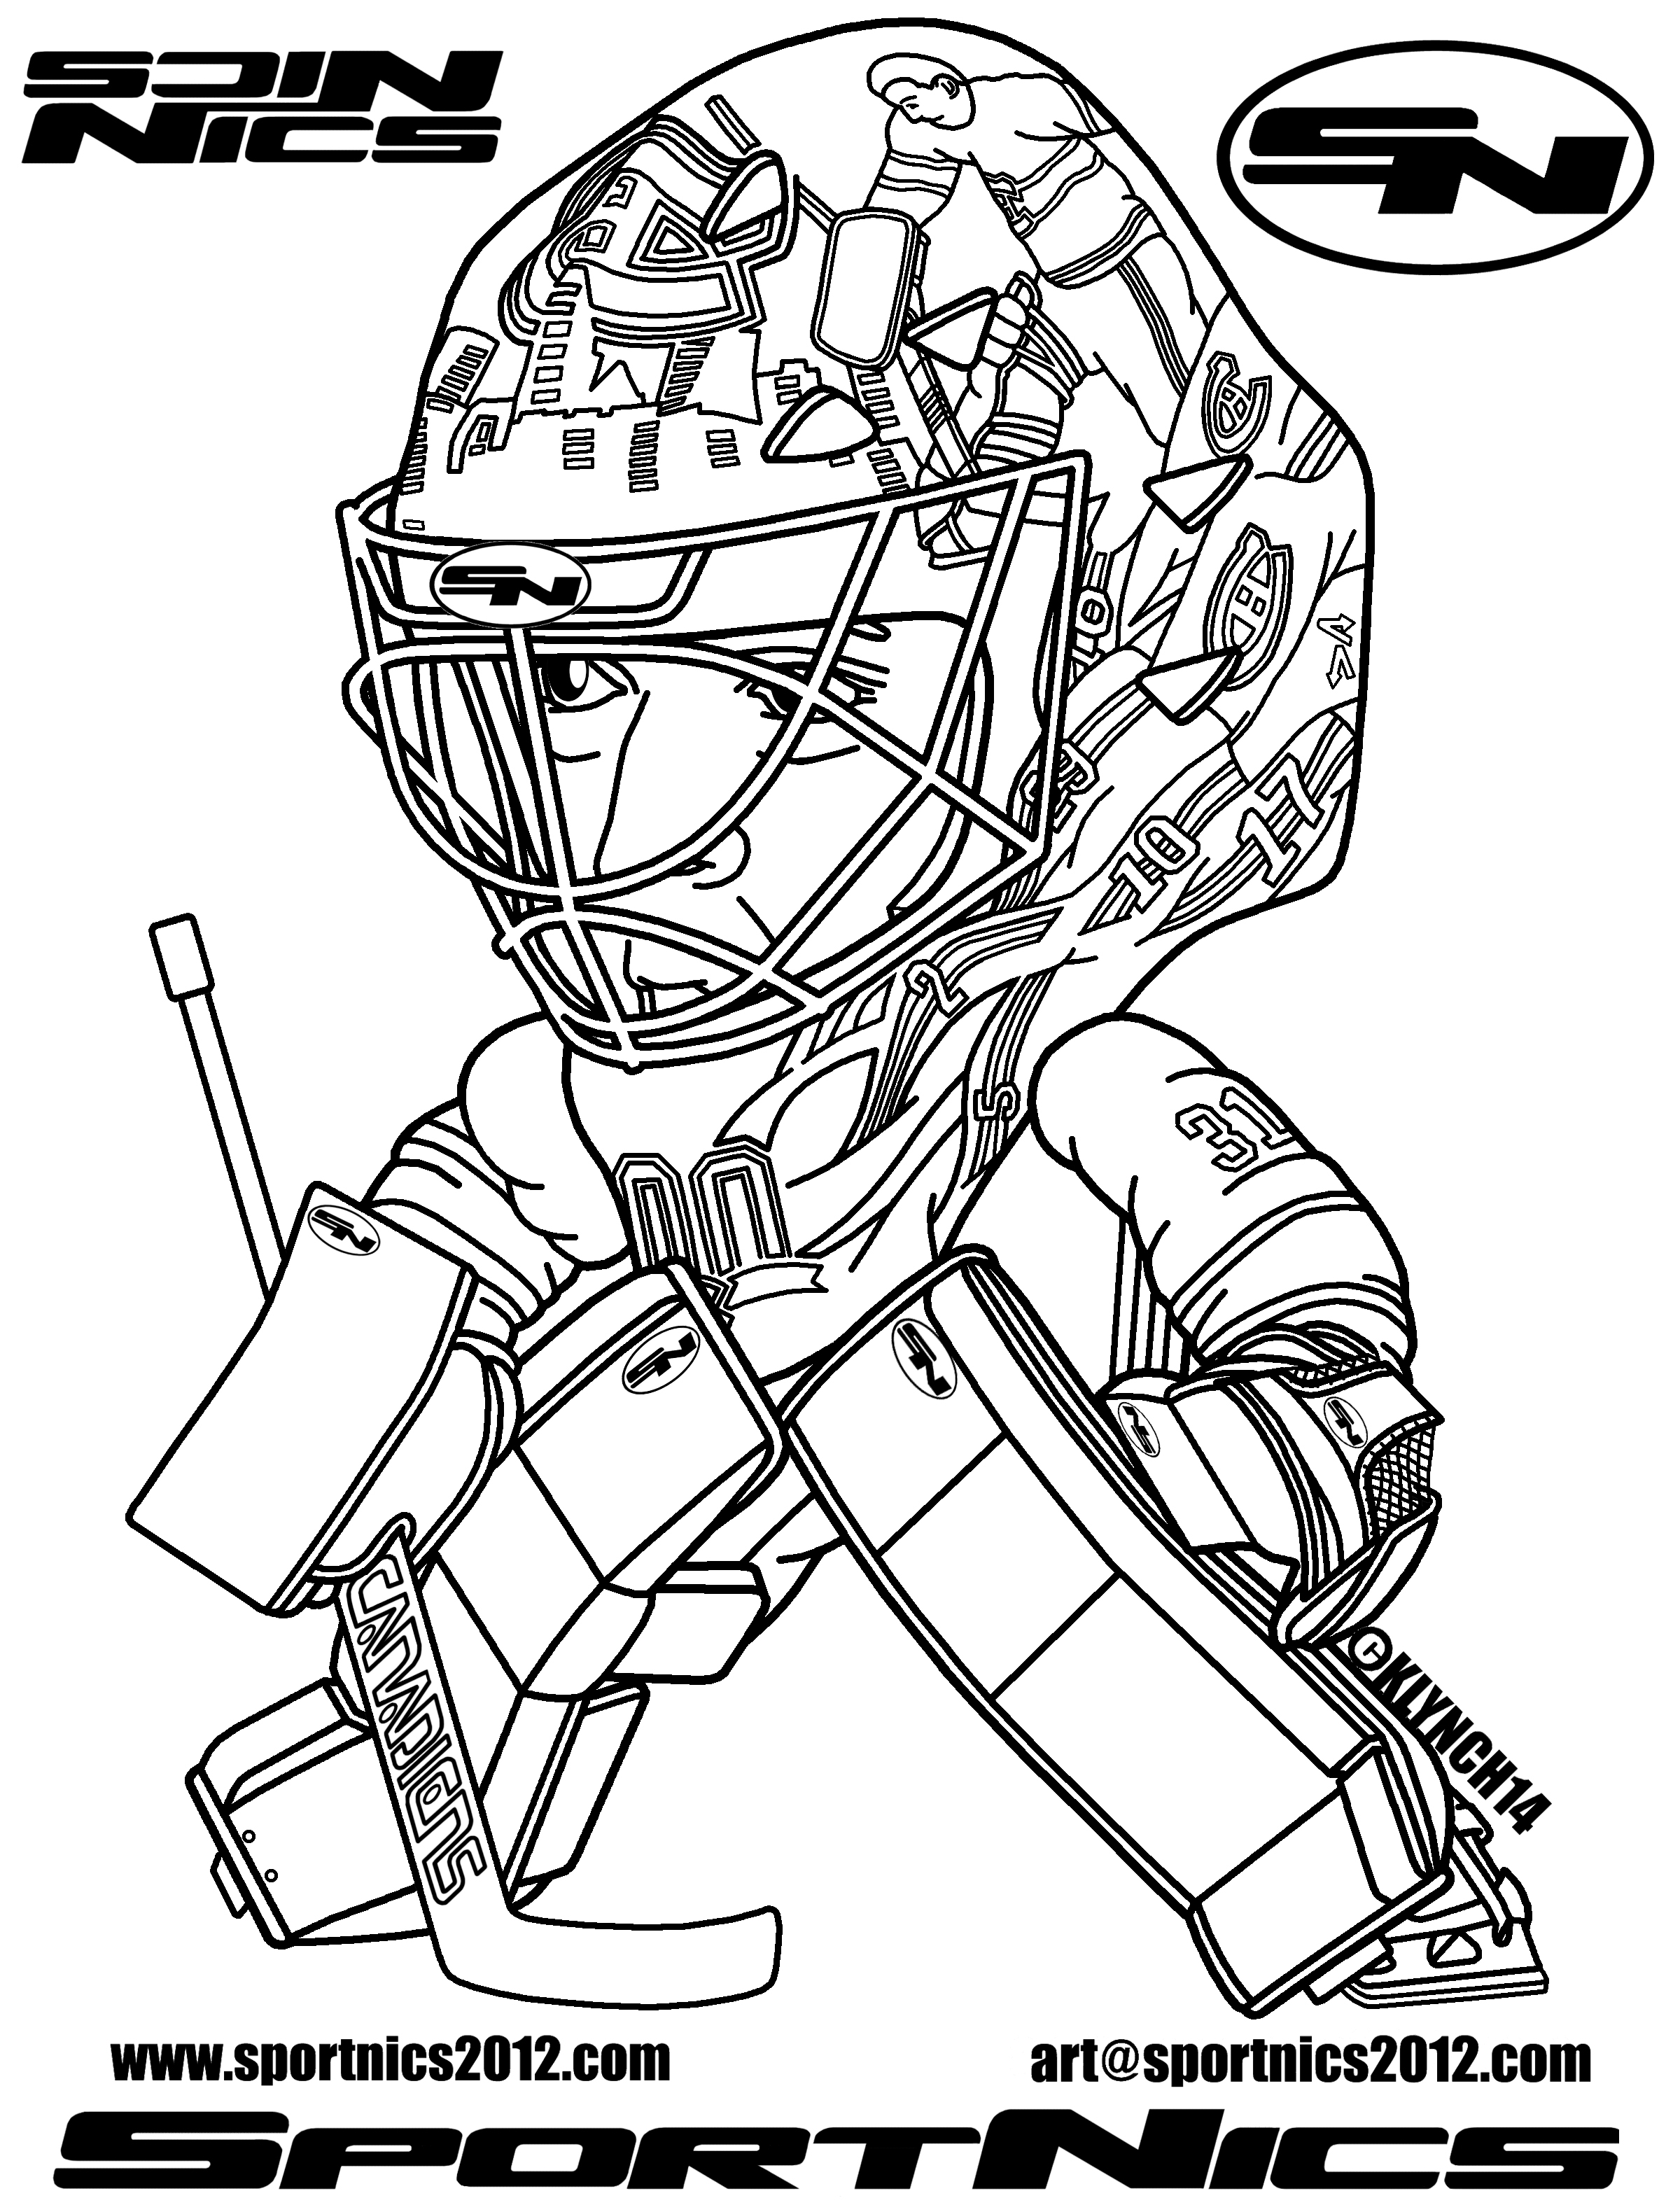 Montreal Canadiens Coloring Pages - Photos Coloring Page Ncsudan.Org